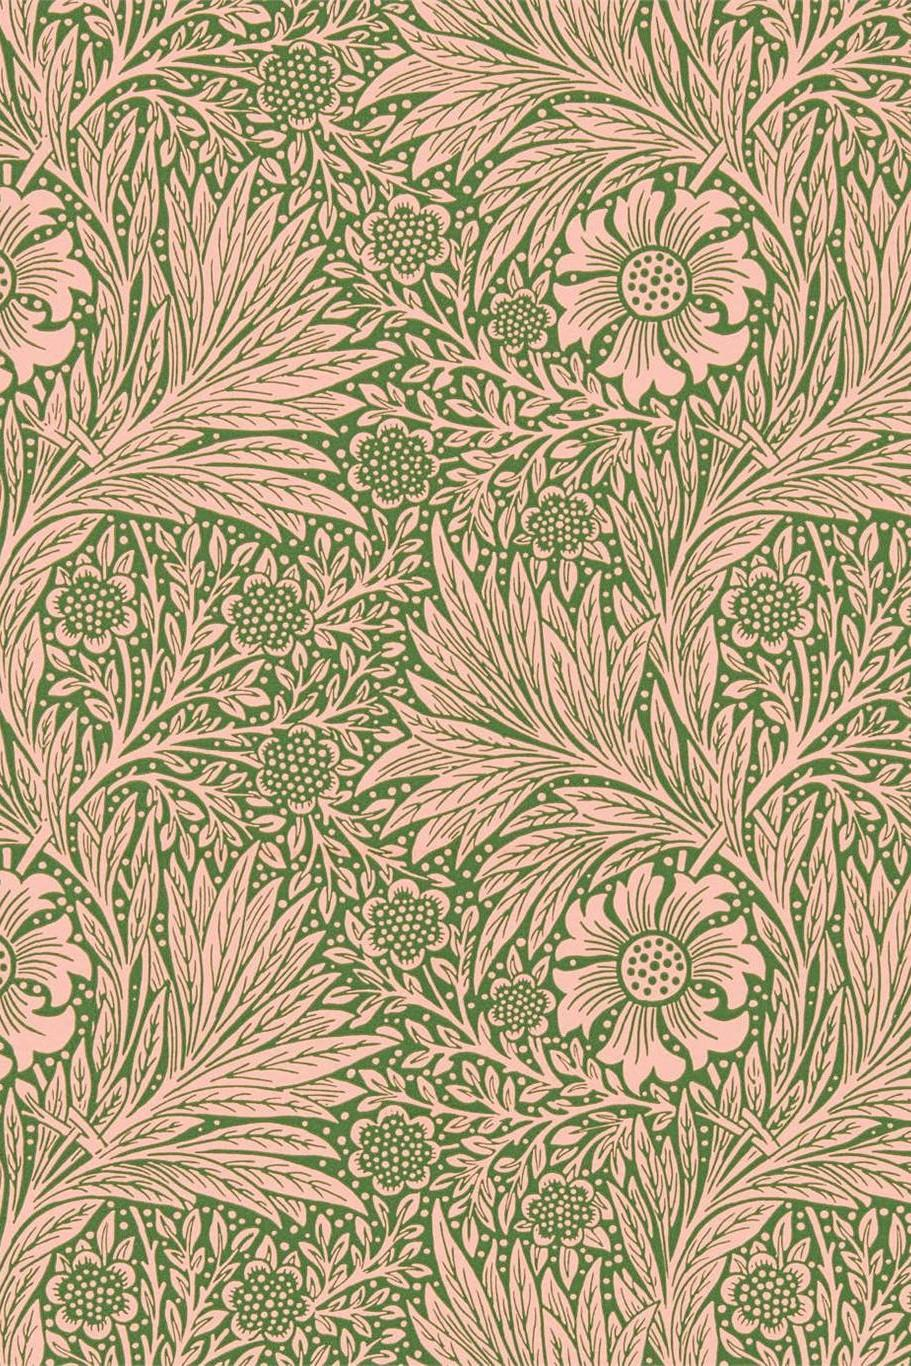 Morris & Co Queen Square Marigold Wallpaper DBPW216953